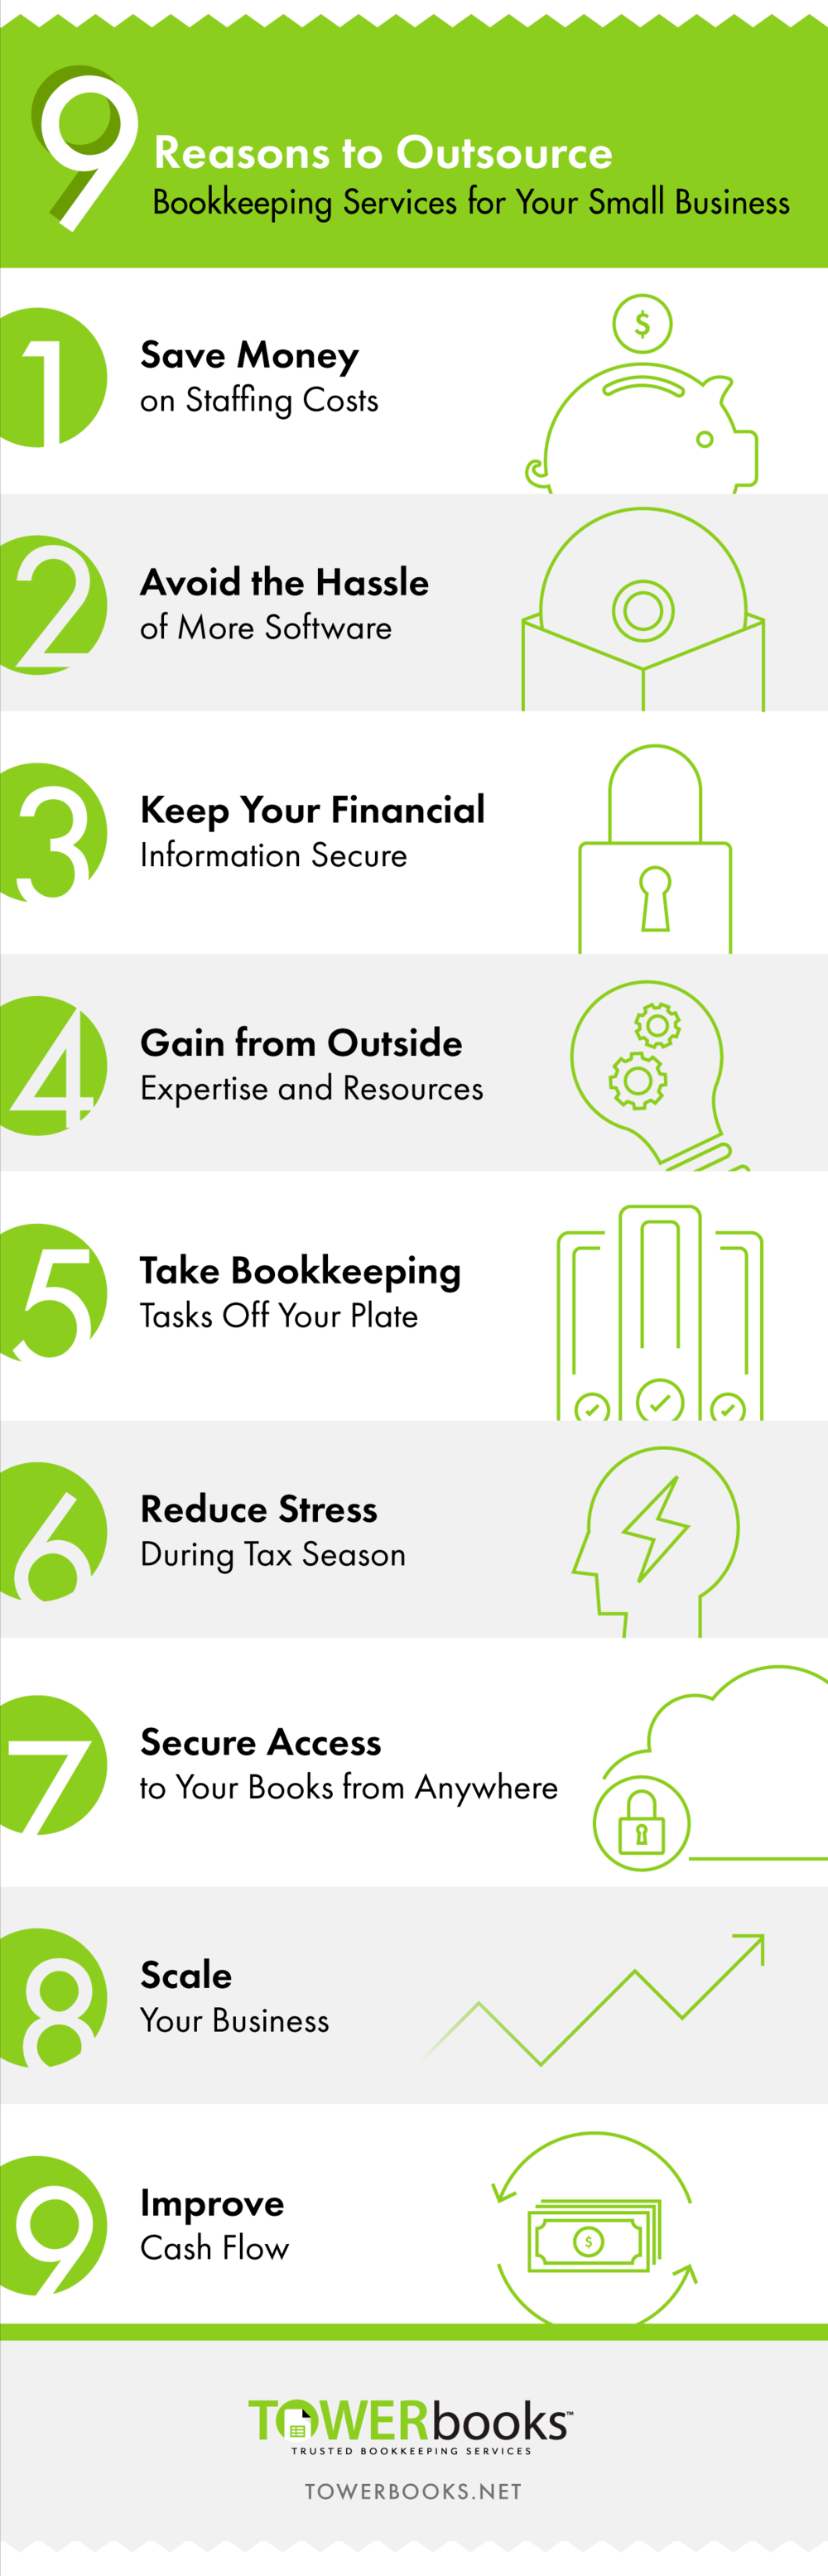 9 Reasons to Outsource Bookkeeping Services for Your Small Business.png